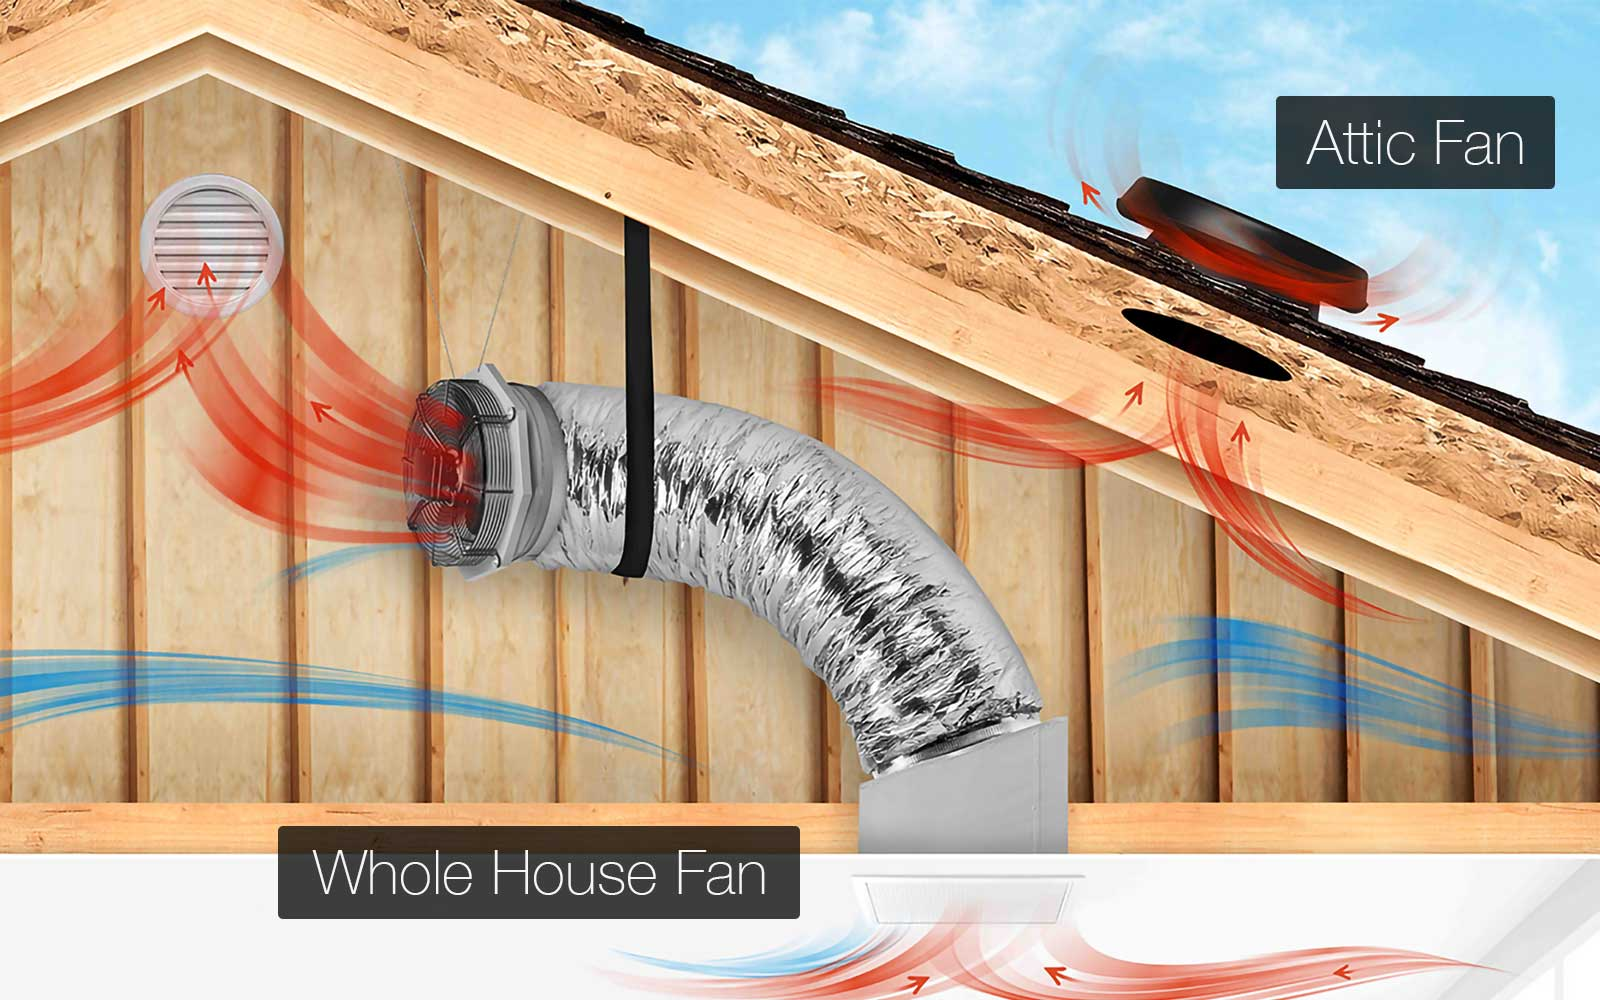 whole house + attic fan working together